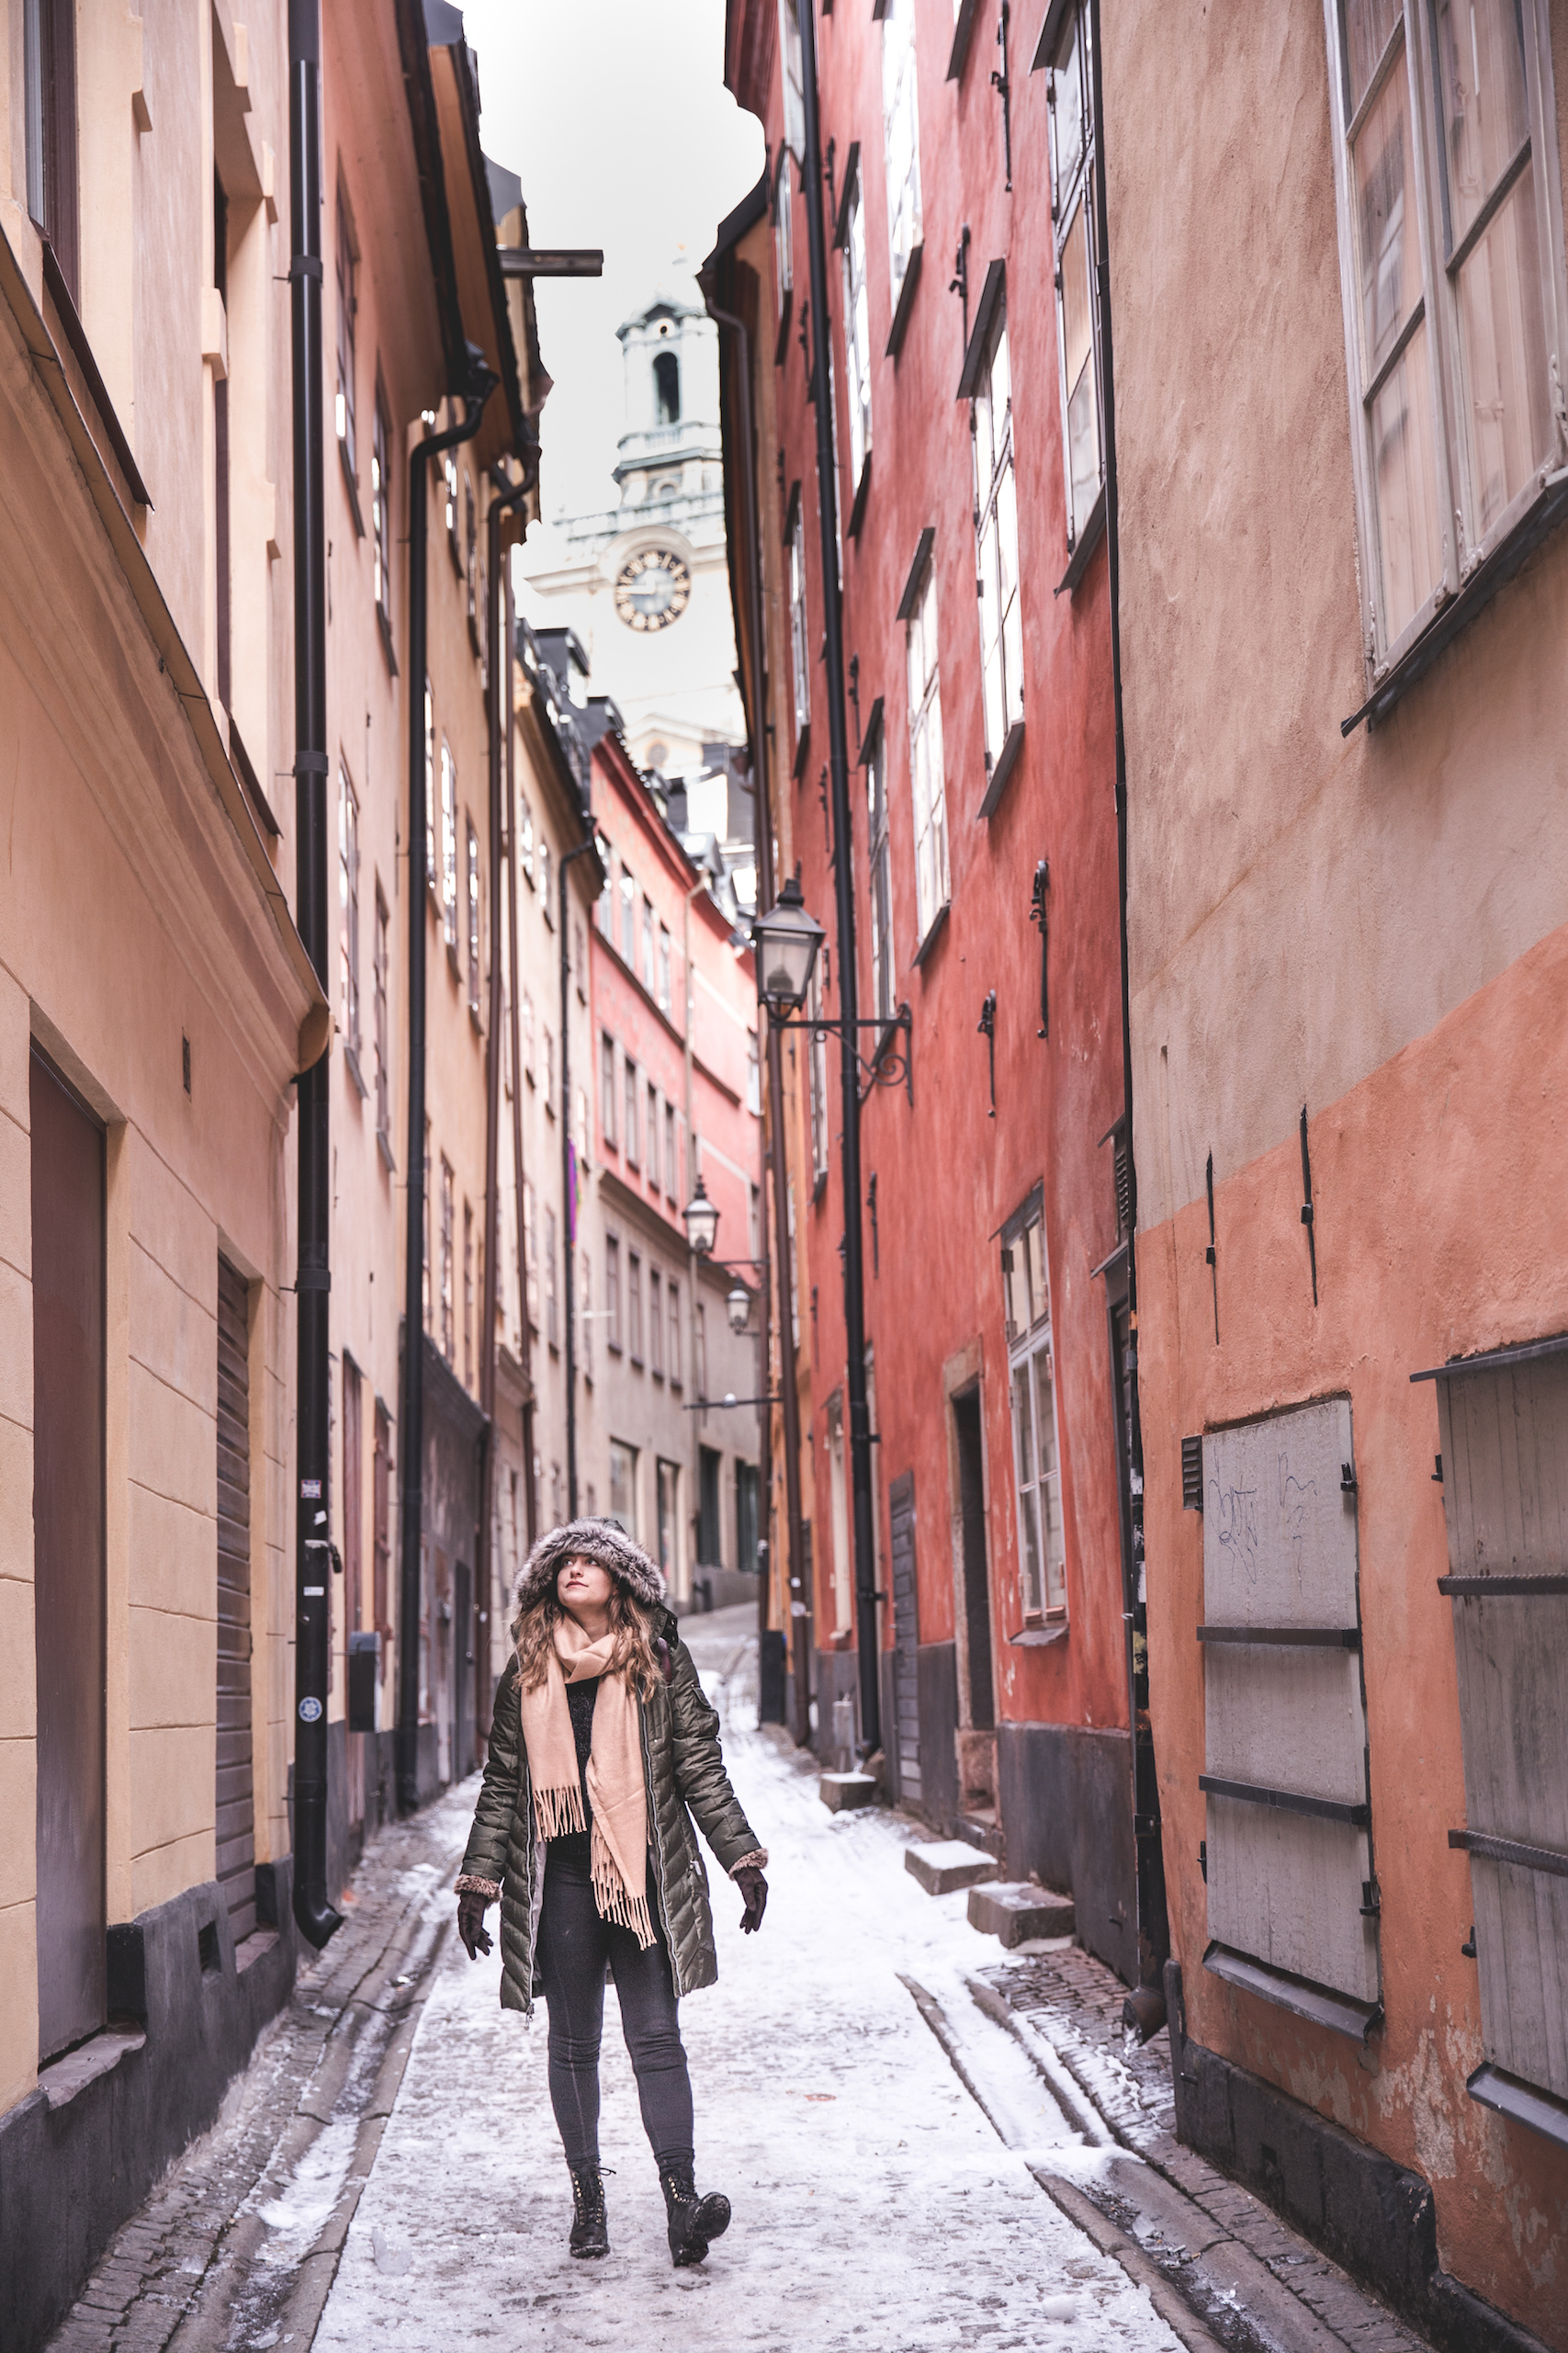 Kelsey wearing winter clothes and walking in an alley in the Stockholm Old Town, Gamla Stan, surrounded by bright red and orange buildings with snow on the ground